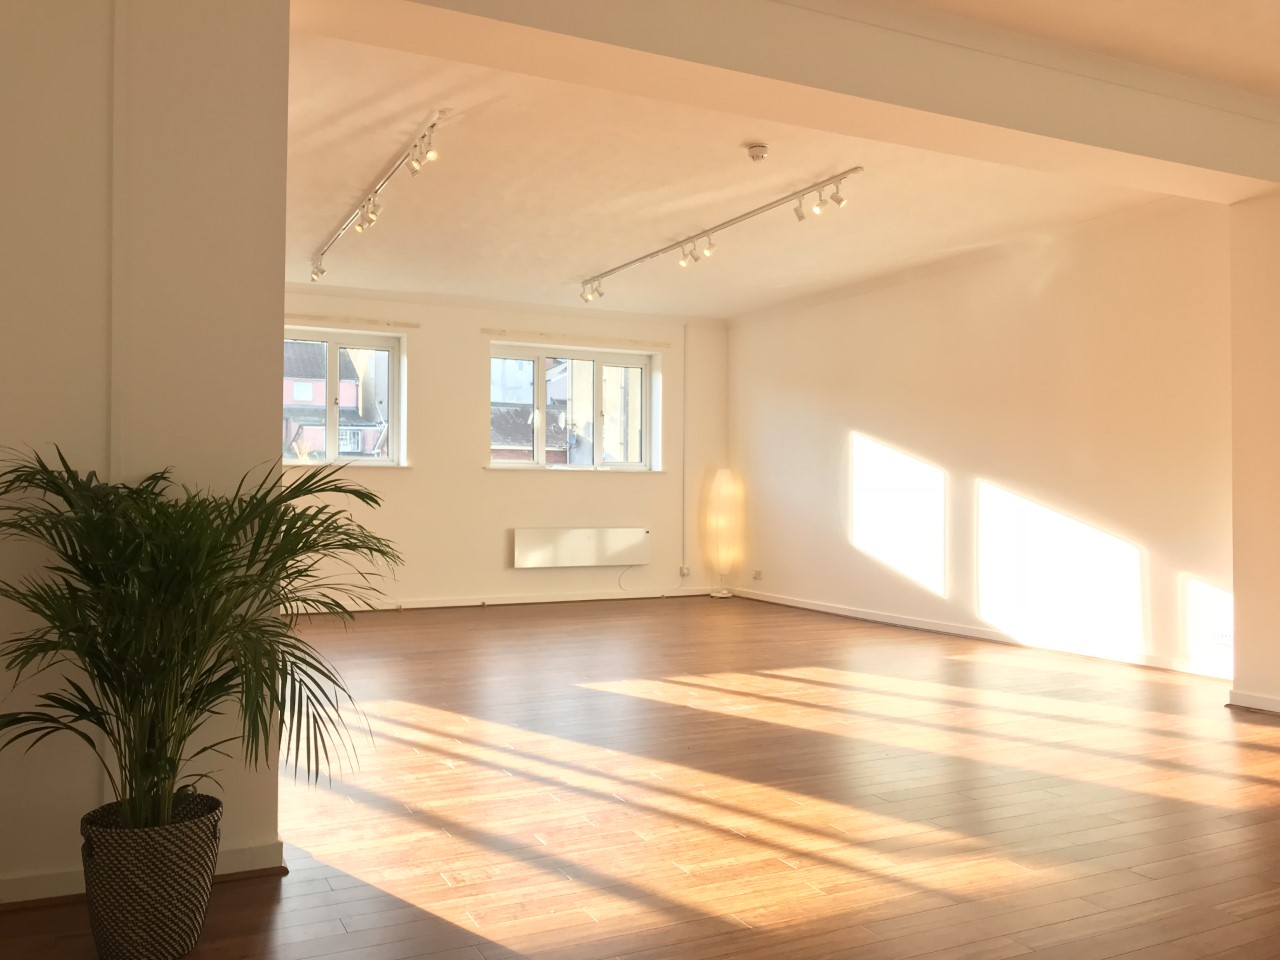 The Space - Chepstow Yoga Space is Chepstow's first dedicated yoga studio, and I'm so honoured to call this bright, spacious and central studio my base. It is buzzing with good energy.